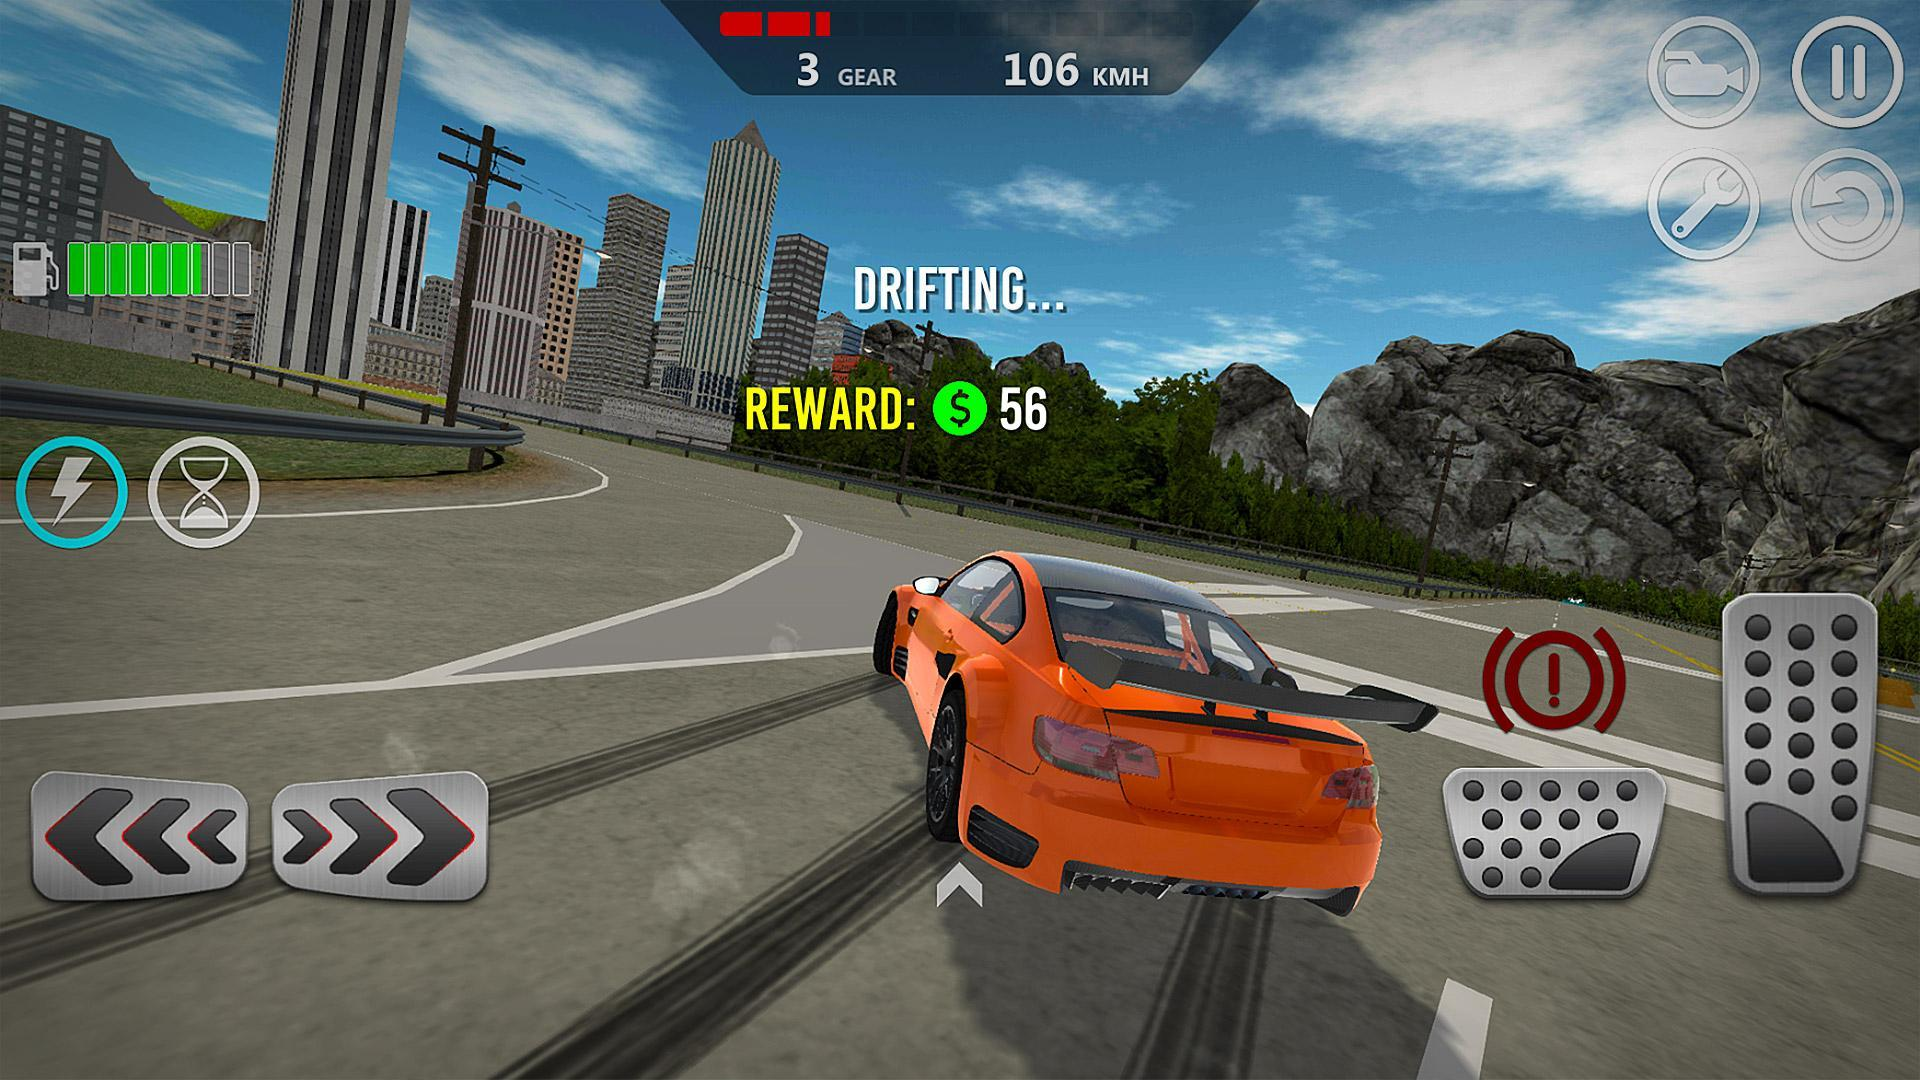 Extreme Speed Car Simulator 2019 for Android - APK Download